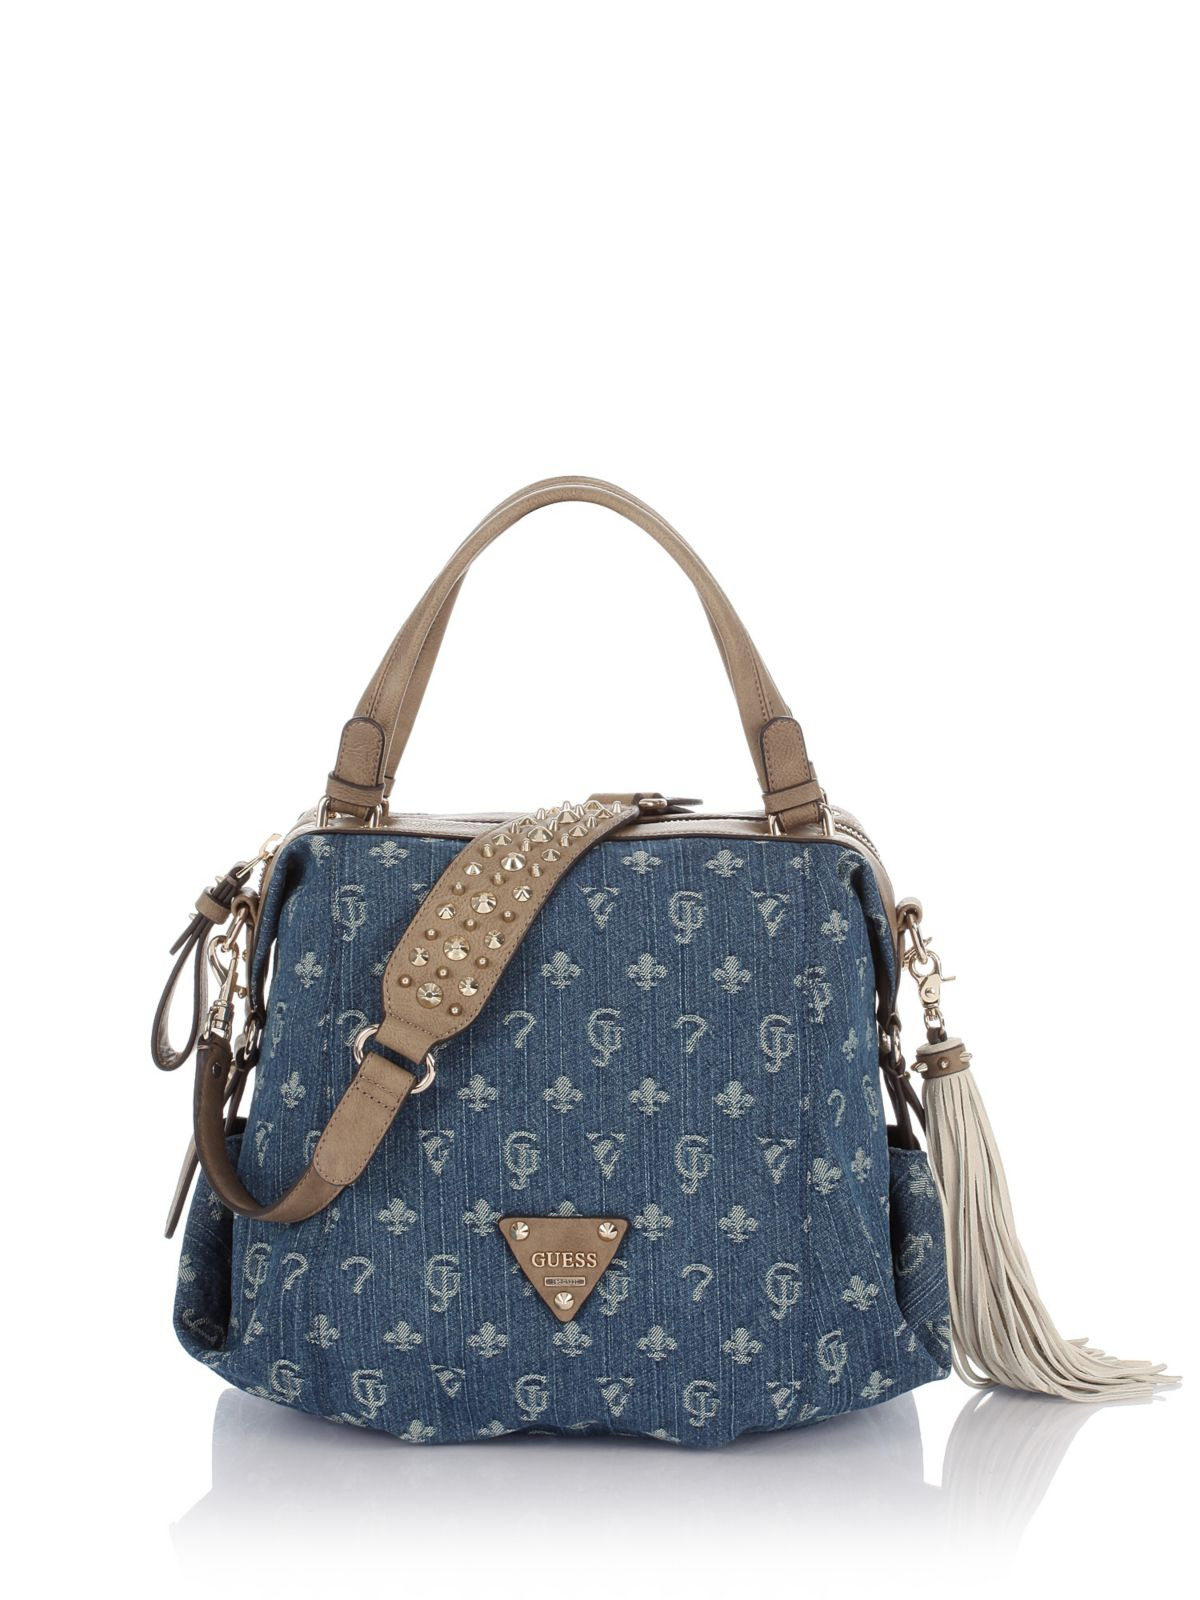 Guess Wild At Heart Lulu Denim Satchel Bag in Blue | Lyst